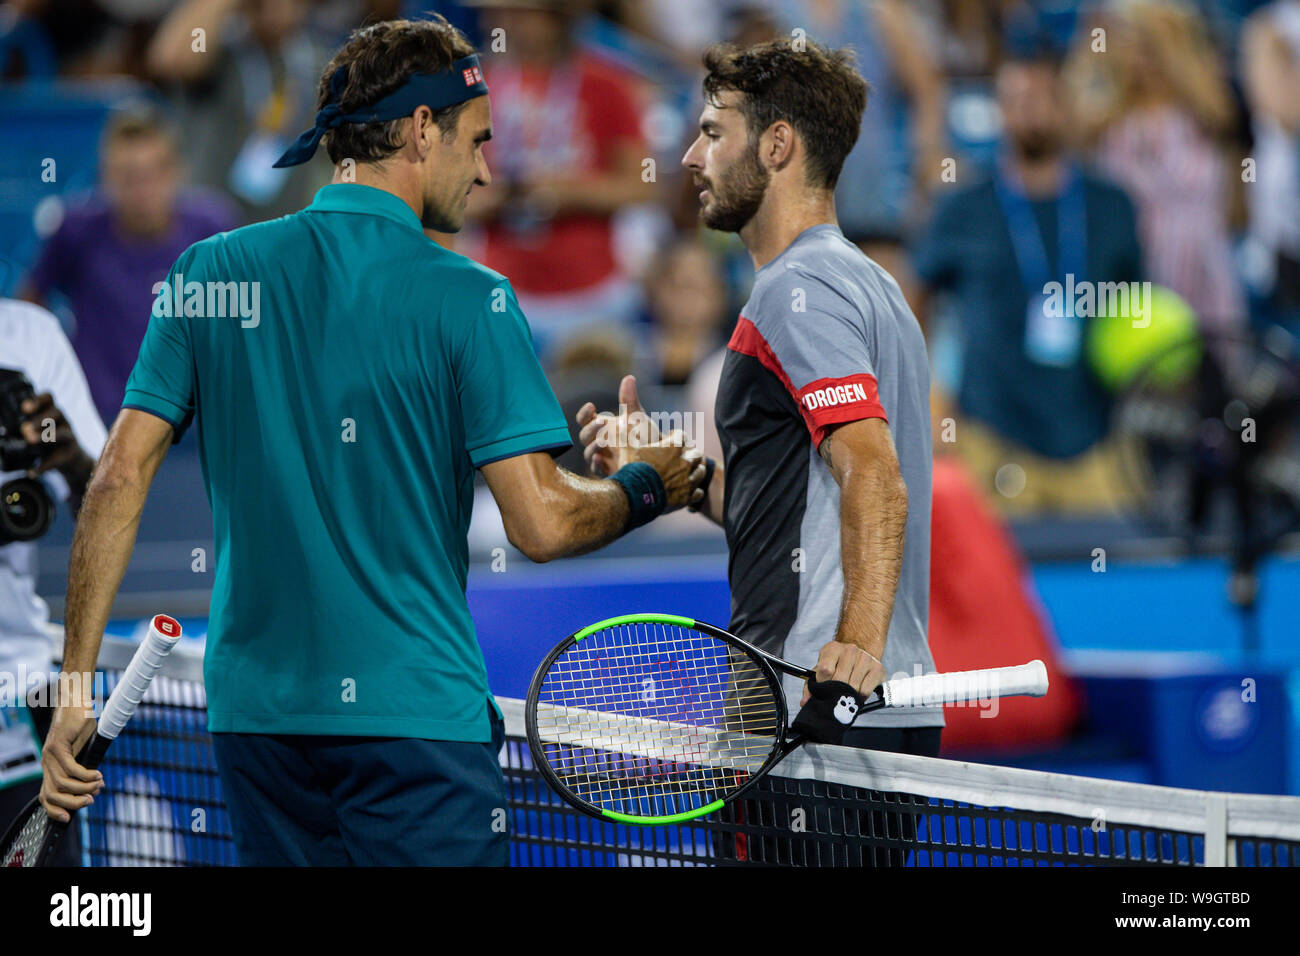 Mason, Ohio, USA. 13th Aug, 2019. Roger Federer, (SUI) and Juan Ignacio Londero (ARG) meet at the net after Federer won their match at Tuesday's round of the Western and Southern Open at the Lindner Family Tennis Center, Mason, Oh. Credit: Scott Stuart/ZUMA Wire/Alamy Live News Stock Photo